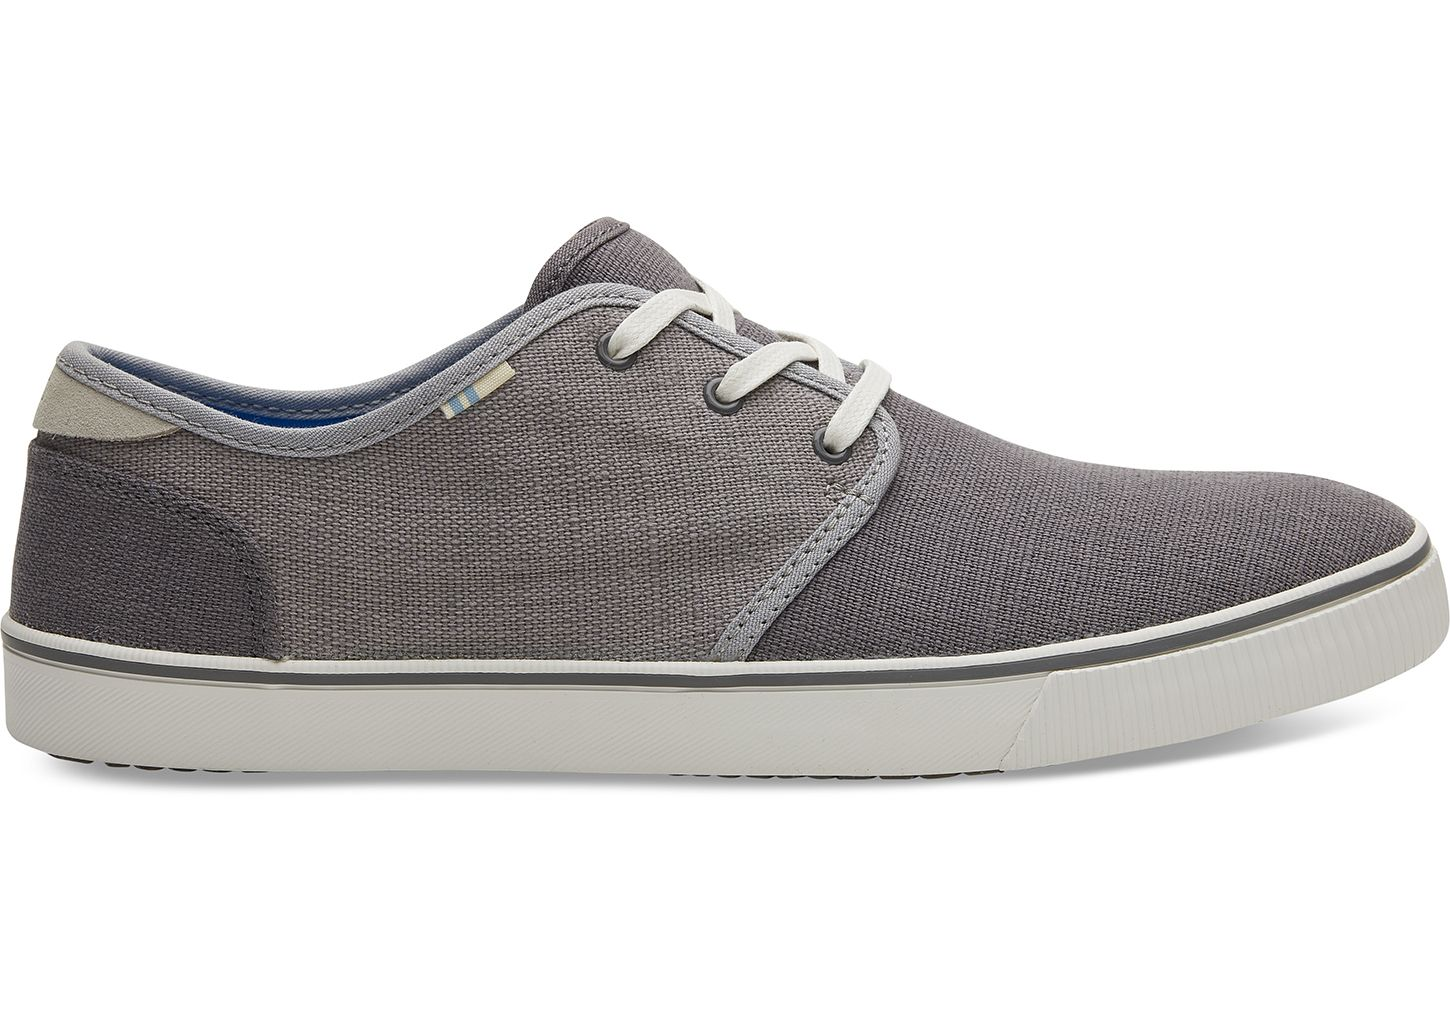 Drizzle Grey And Shade Heritage Canvas